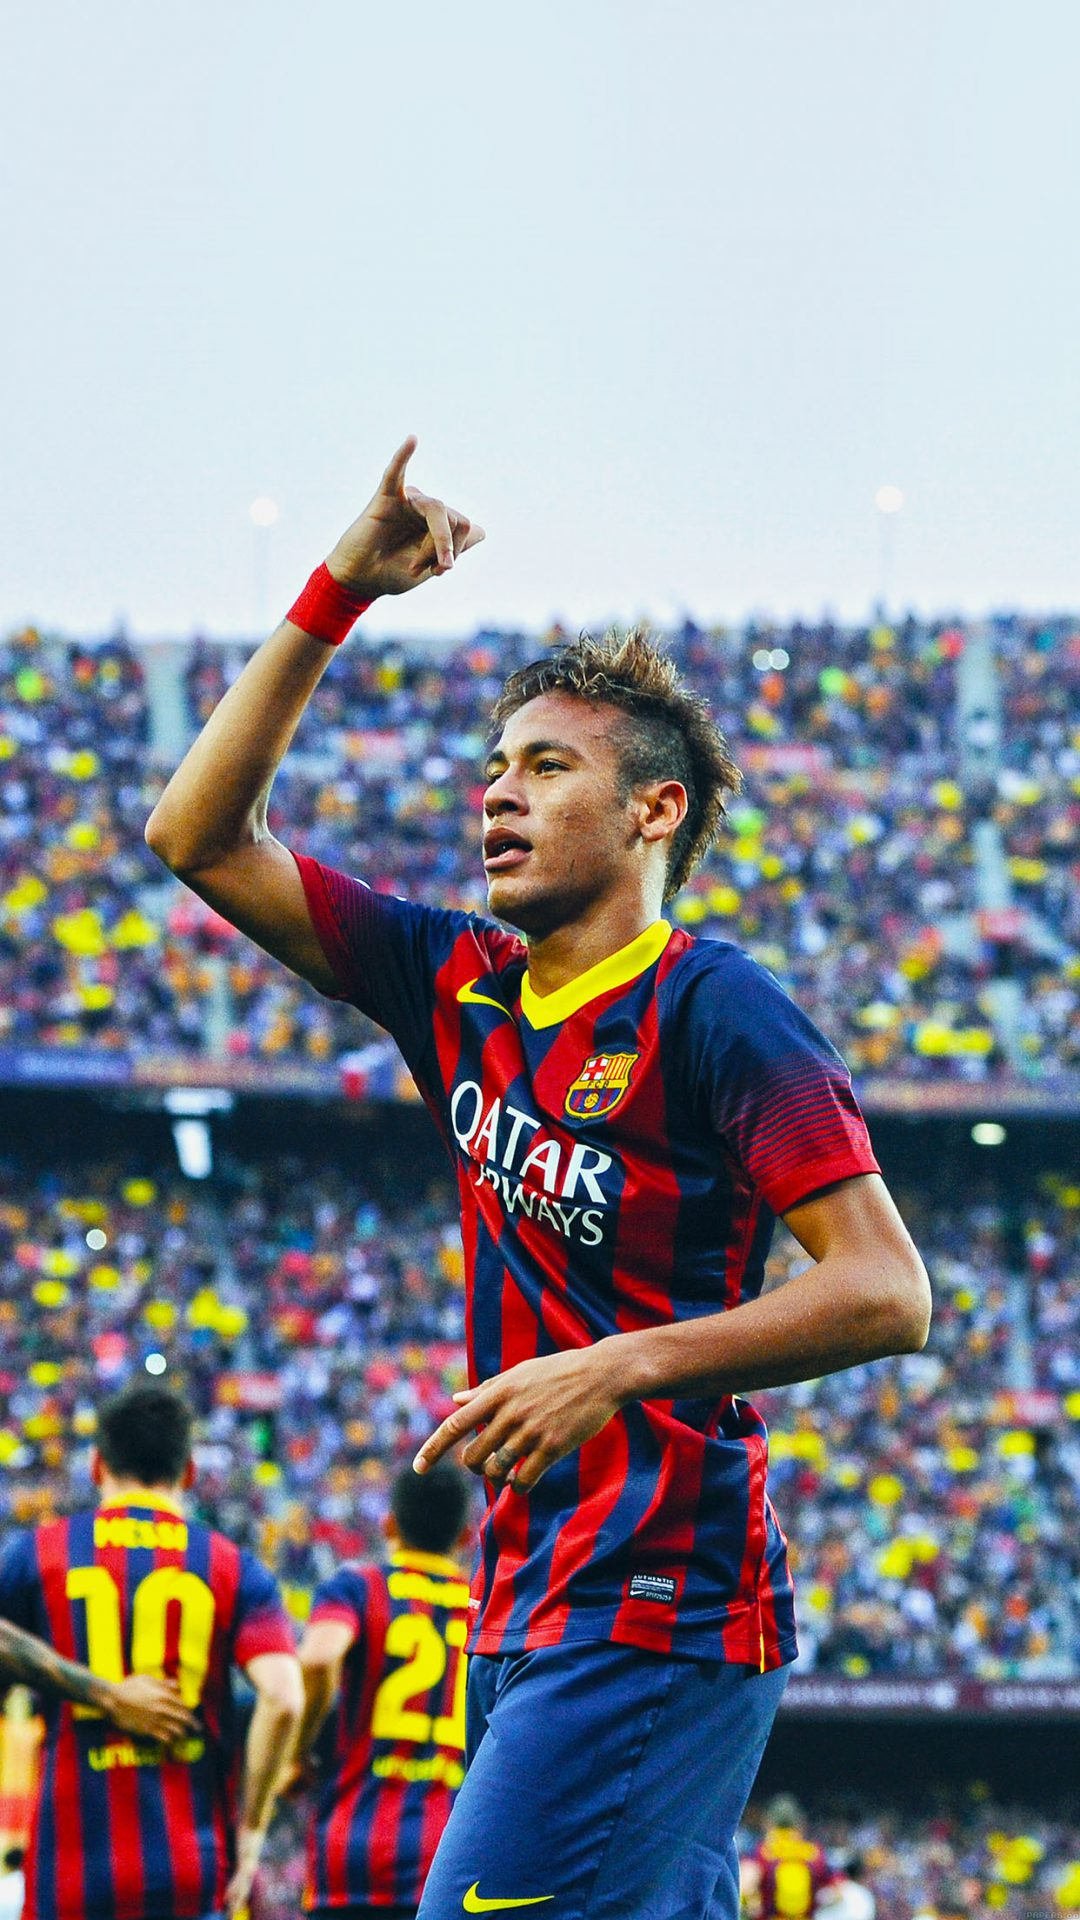 BARCELONA, SPAIN - OCTOBER 26:  Neymar of FC Barcelona celebrates after scoring the opening goal during the La Liga match between FC Barcelona and Real Madrid CF at Camp Nou on October 26, 2013 in Barcelona, Spain.  (Photo by David Ramos/Getty Images)